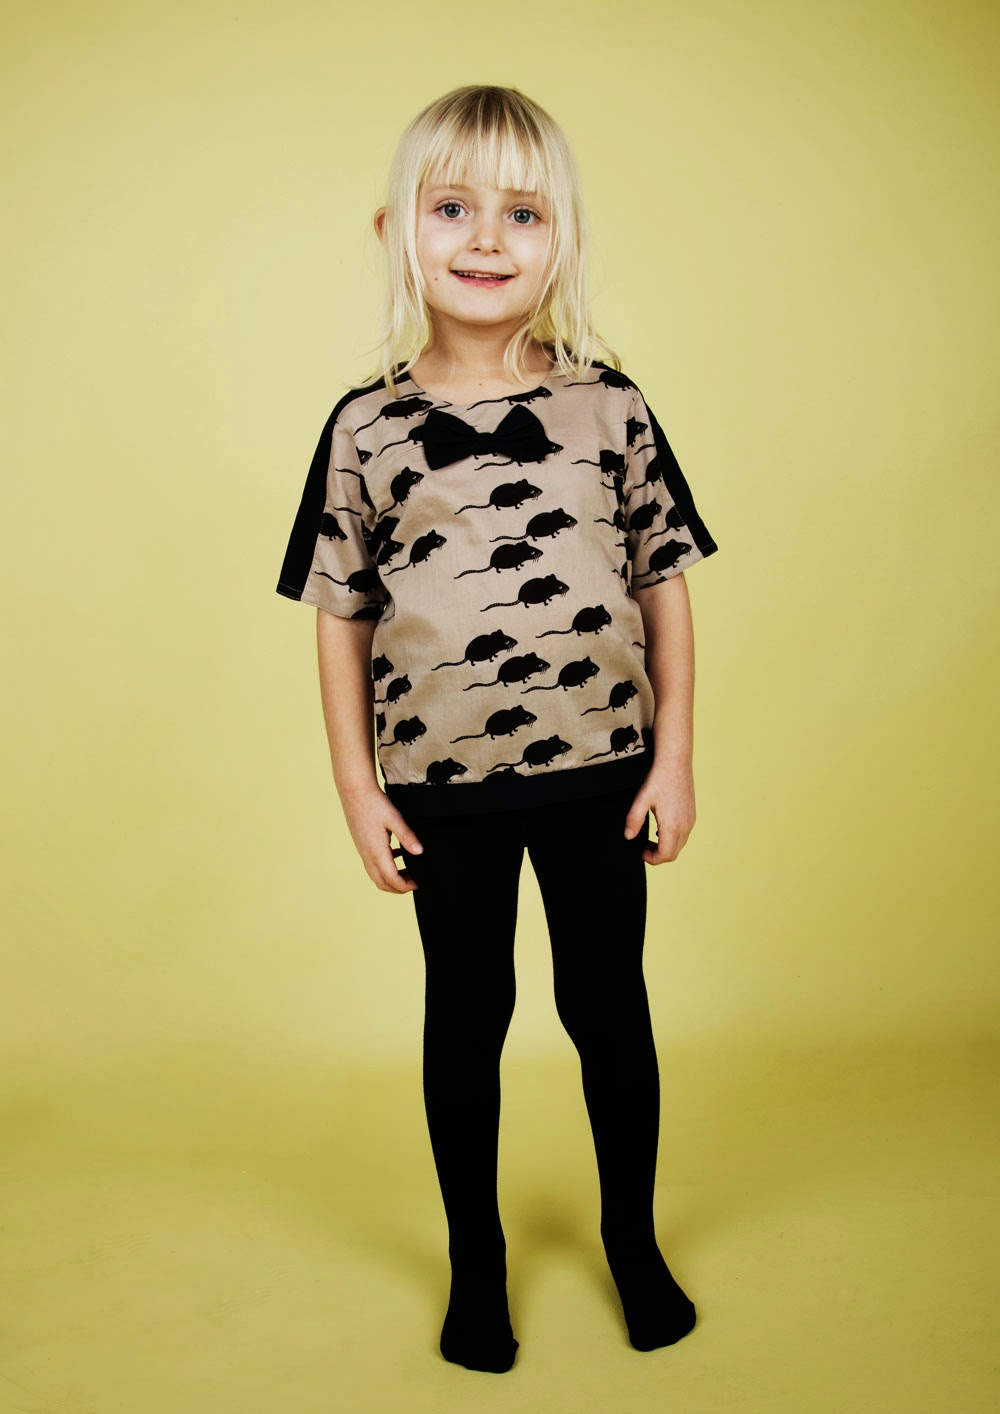 Stylish blouse with the quirky mouse print by Mini Rodini for autumn/winter 2014